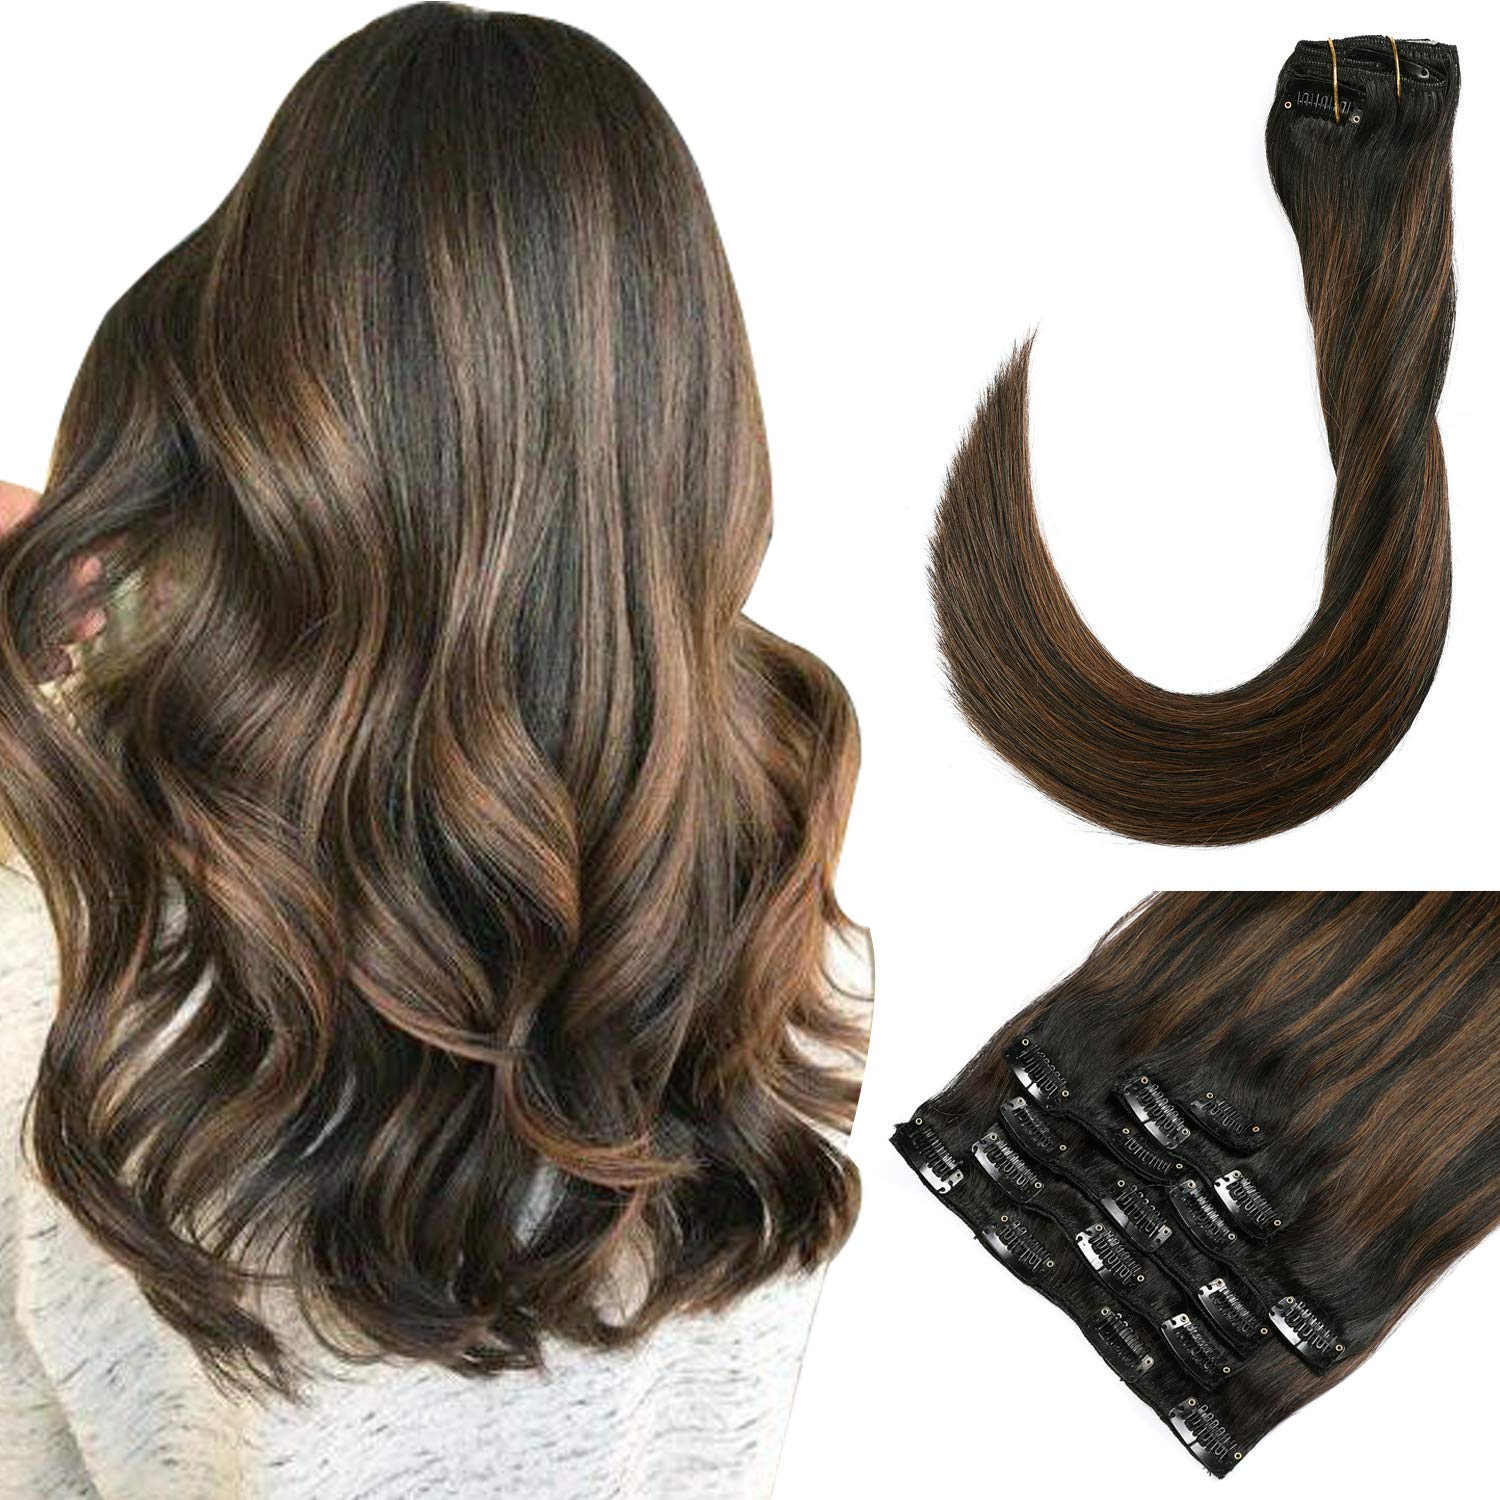 16 Inch Clip in Hair Extensions Real Human Hair Black Brown Highlights 120 Gram Double Weft Straight Remy Human Hair Extension Clip on for Full Head (#1BT6P1B)